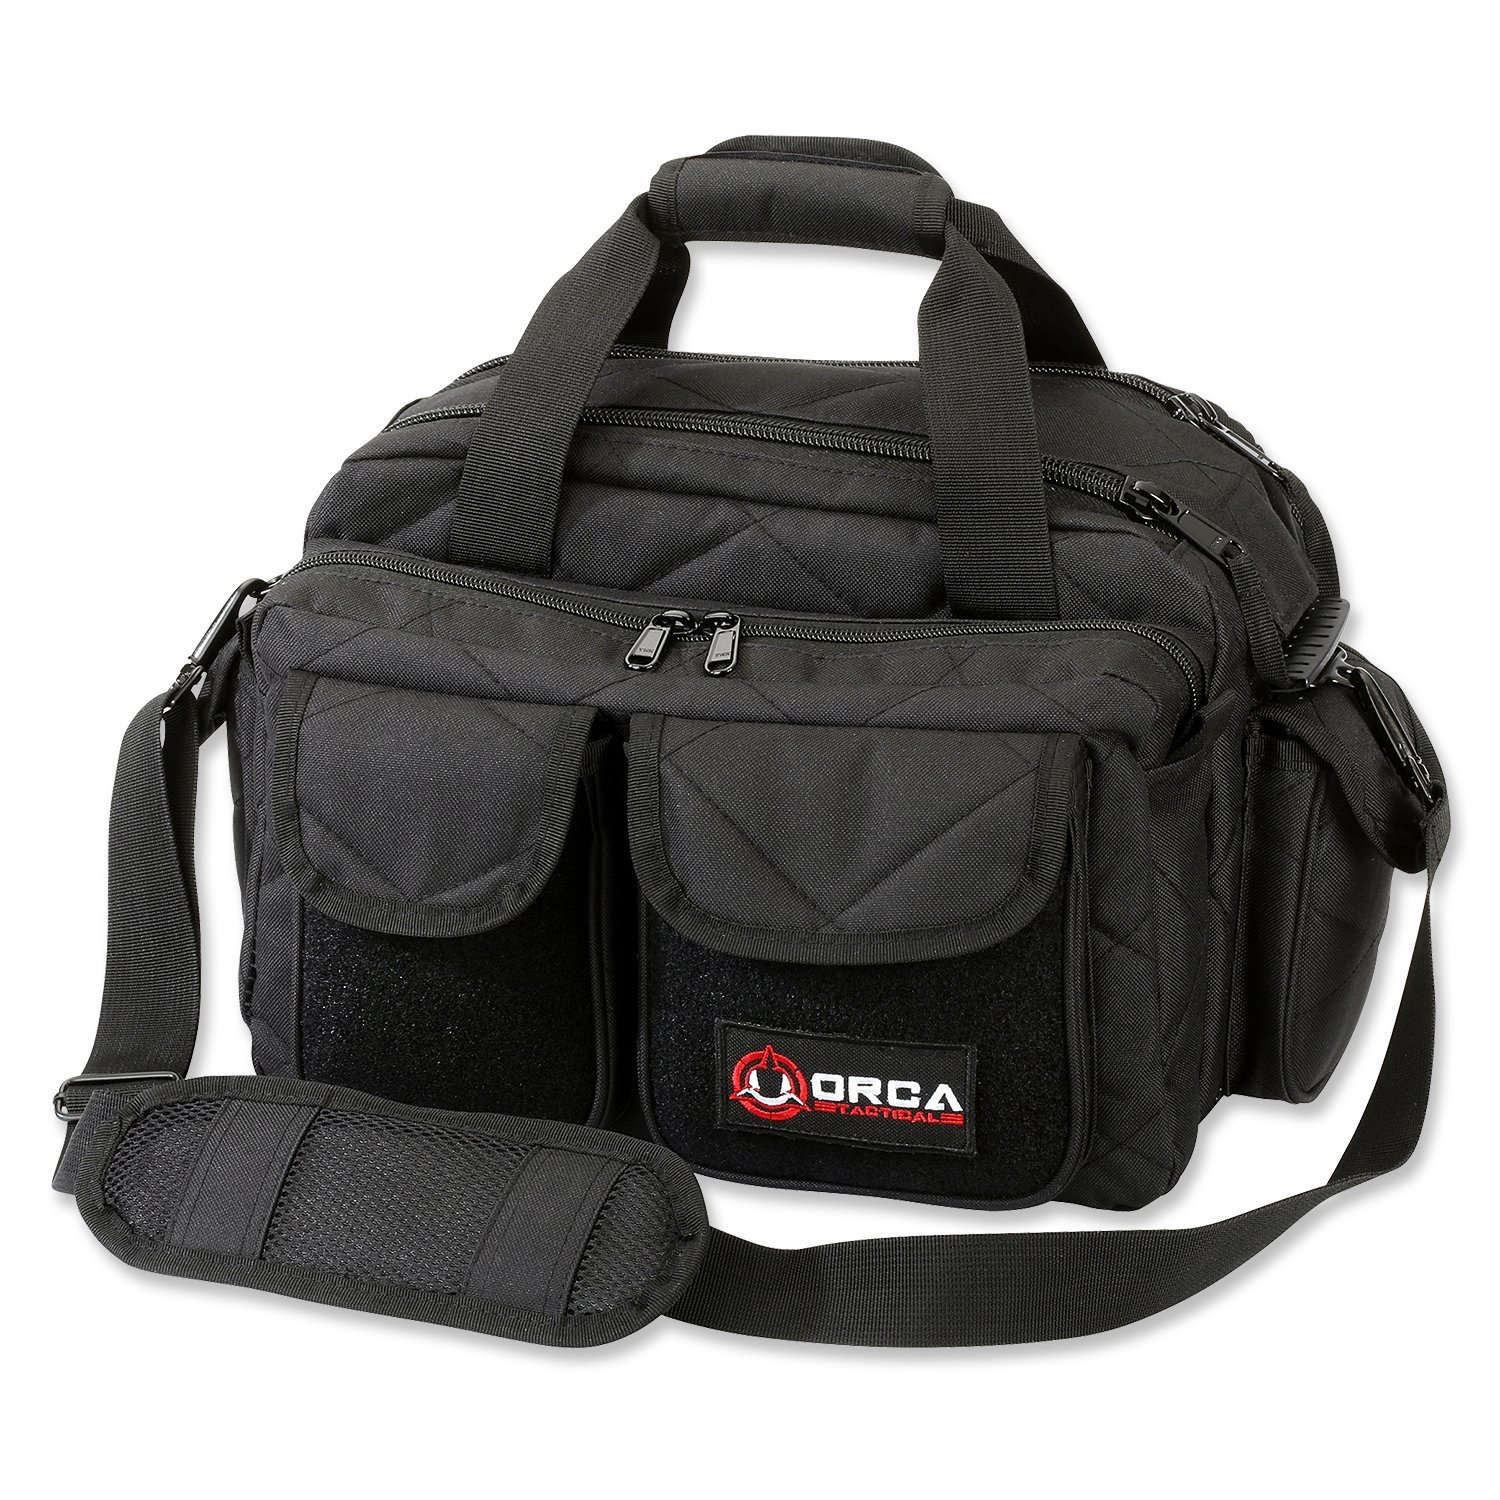 Orca Tactical Range Bag